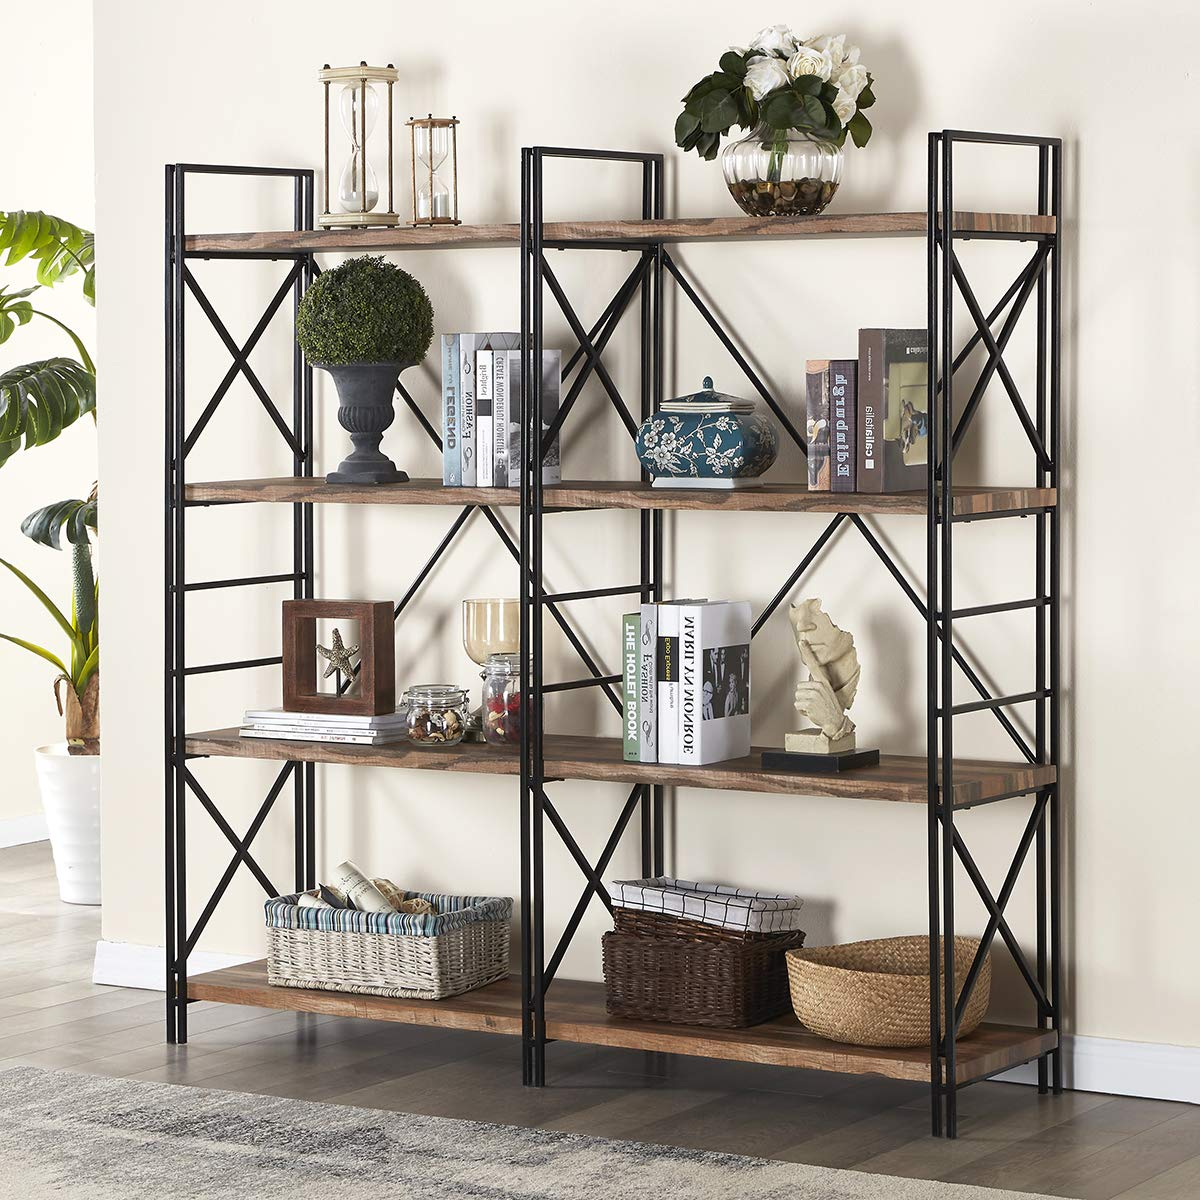 Homissue 4 Shelf Industrial Double Bookcase And Book Shelves, Storage Rack  Display Stand, Etagere Bookshelf With Open 8 Shelf, Retro Brown, 642-inch